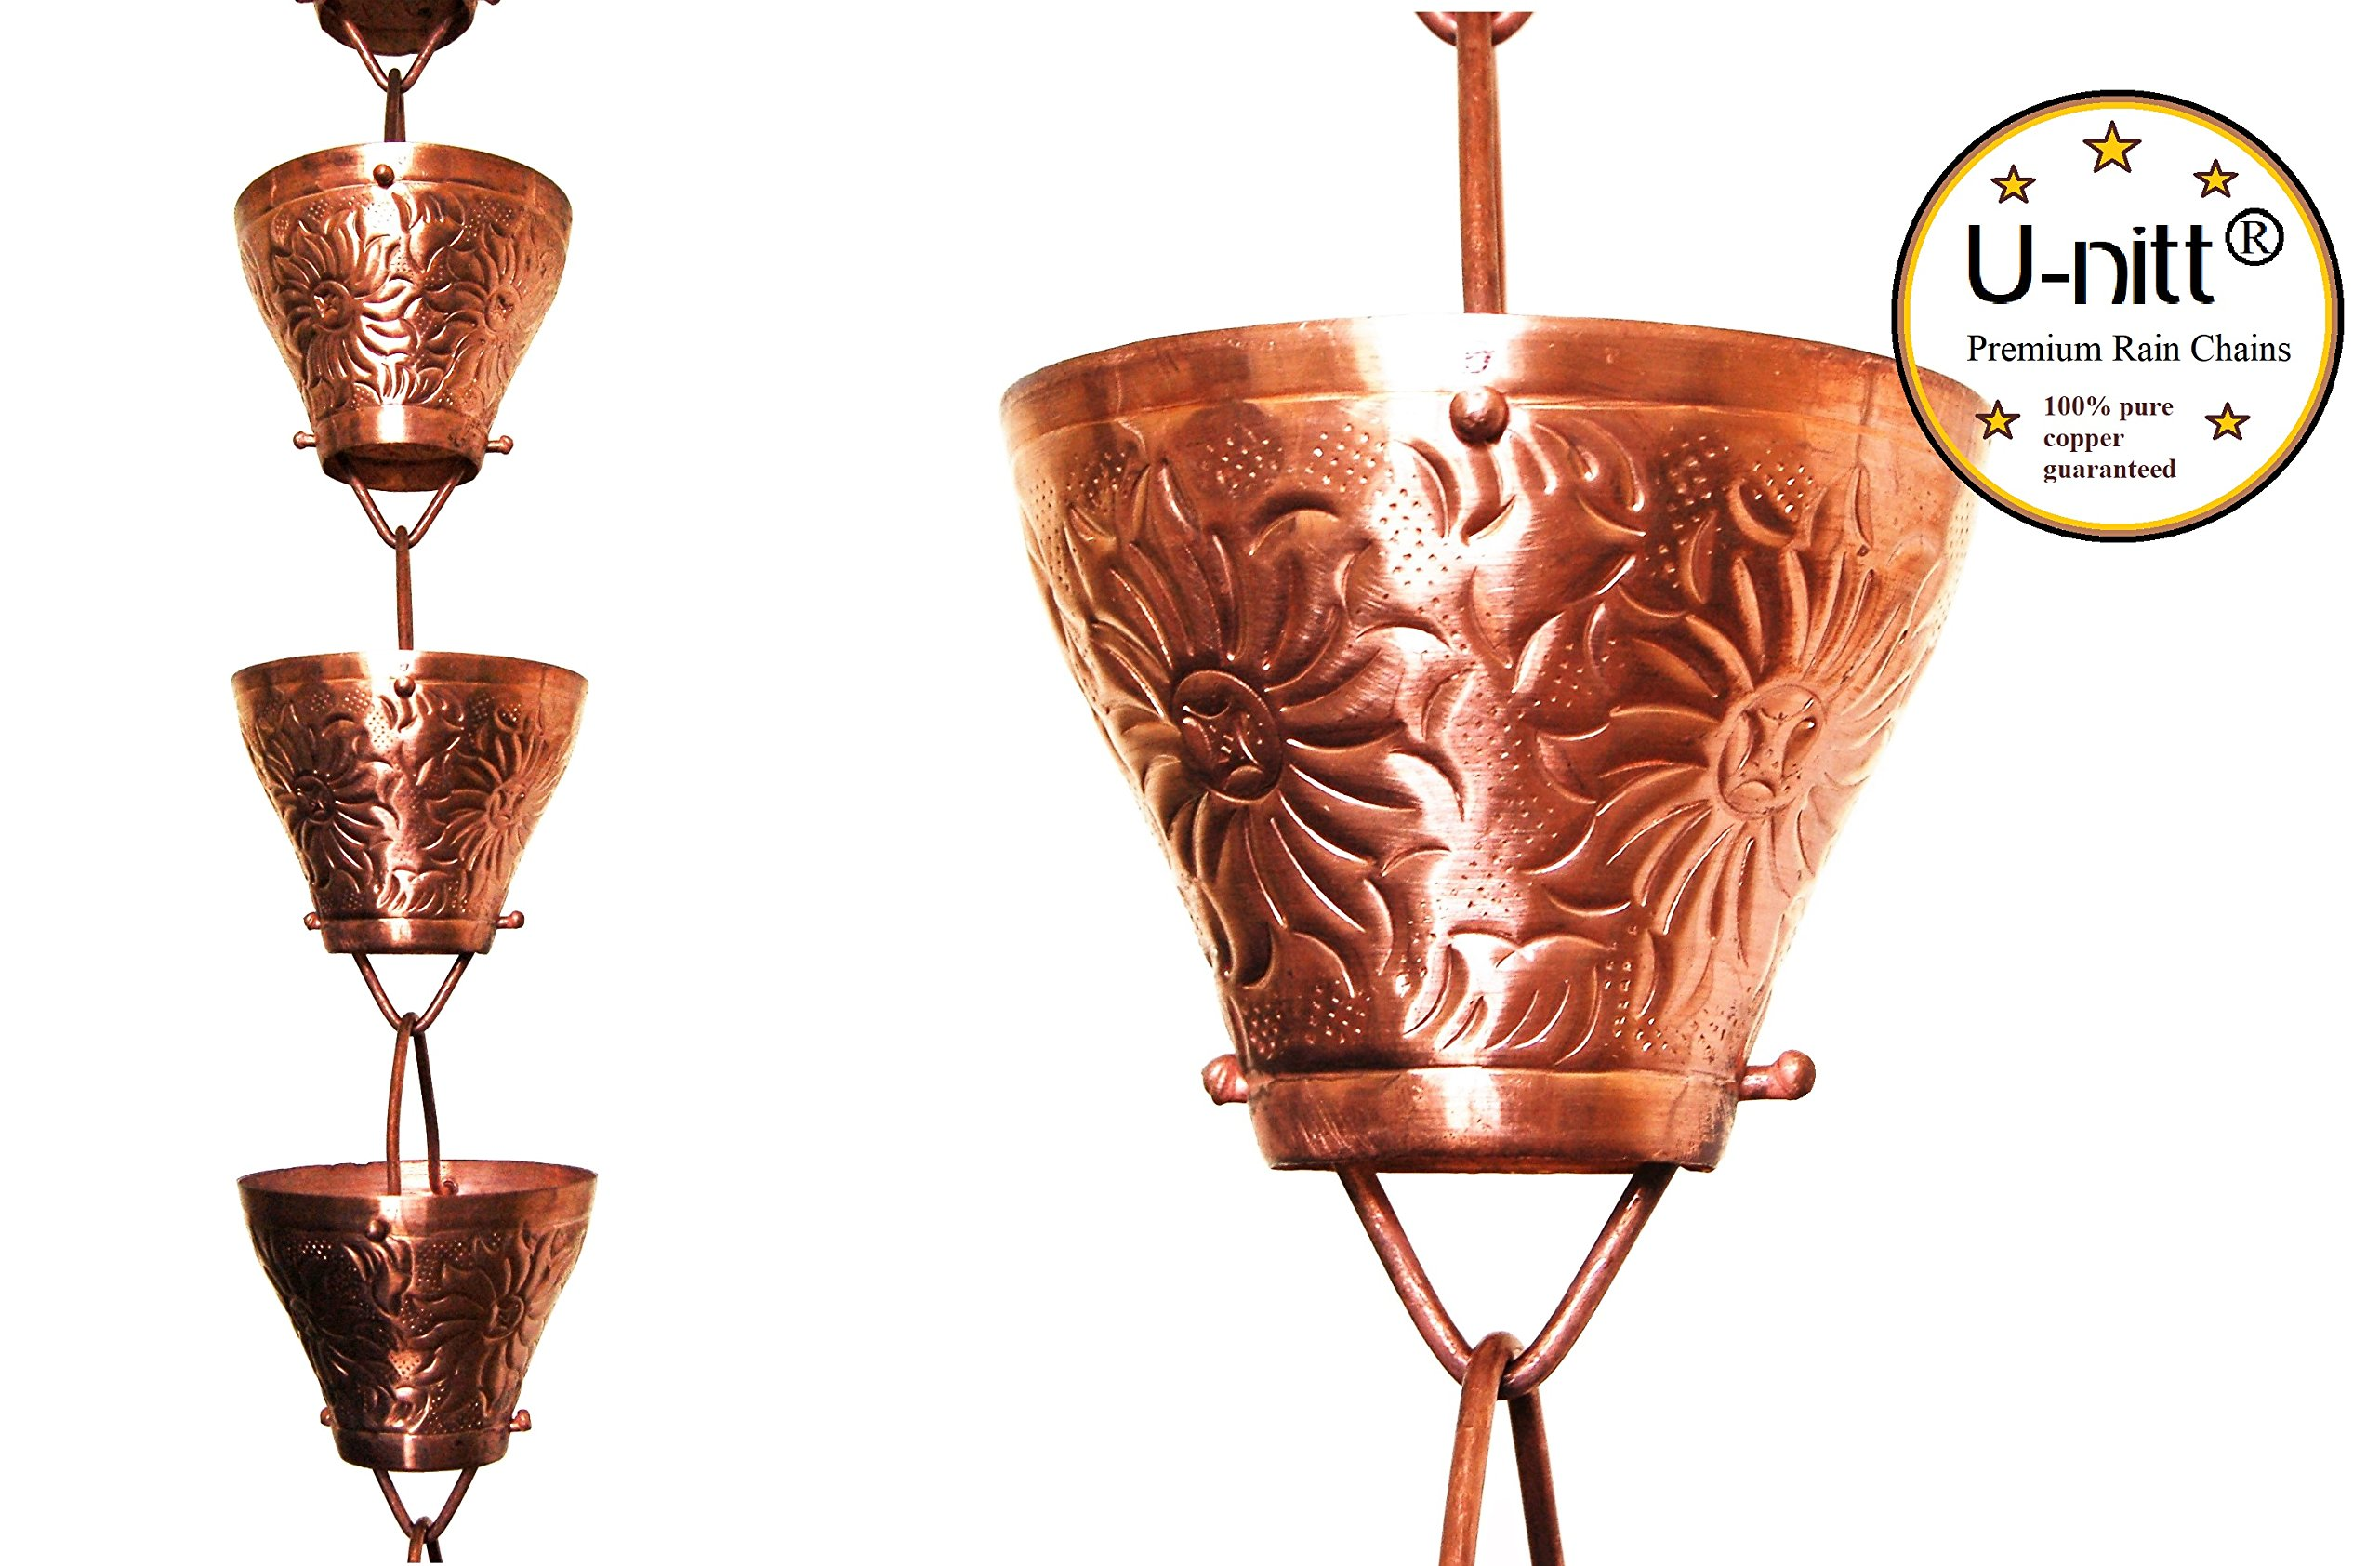 U-nitt 8-1/2 feet Pure Copper Rain Chain: Embossed Sunflower 8.5 ft Length #5501 by U-nitt